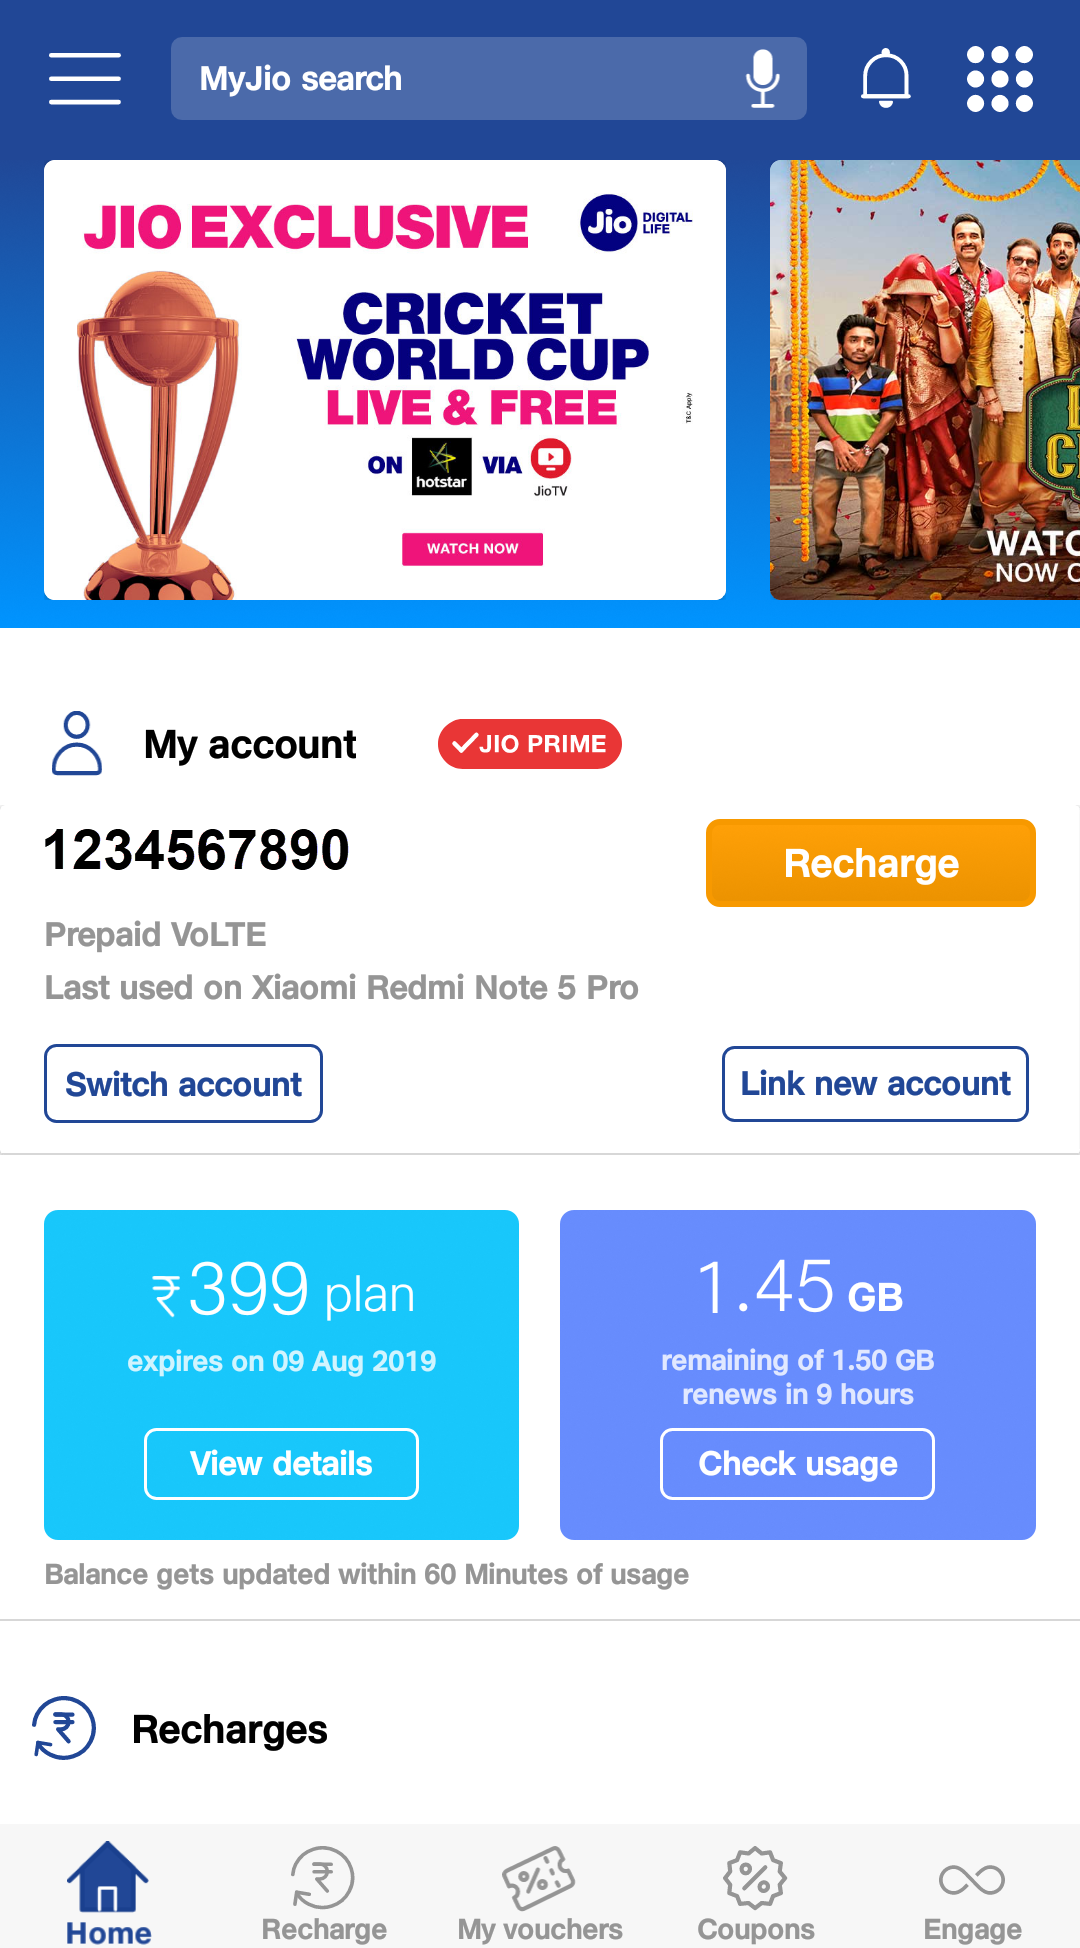 How to Check the Balance in Jio